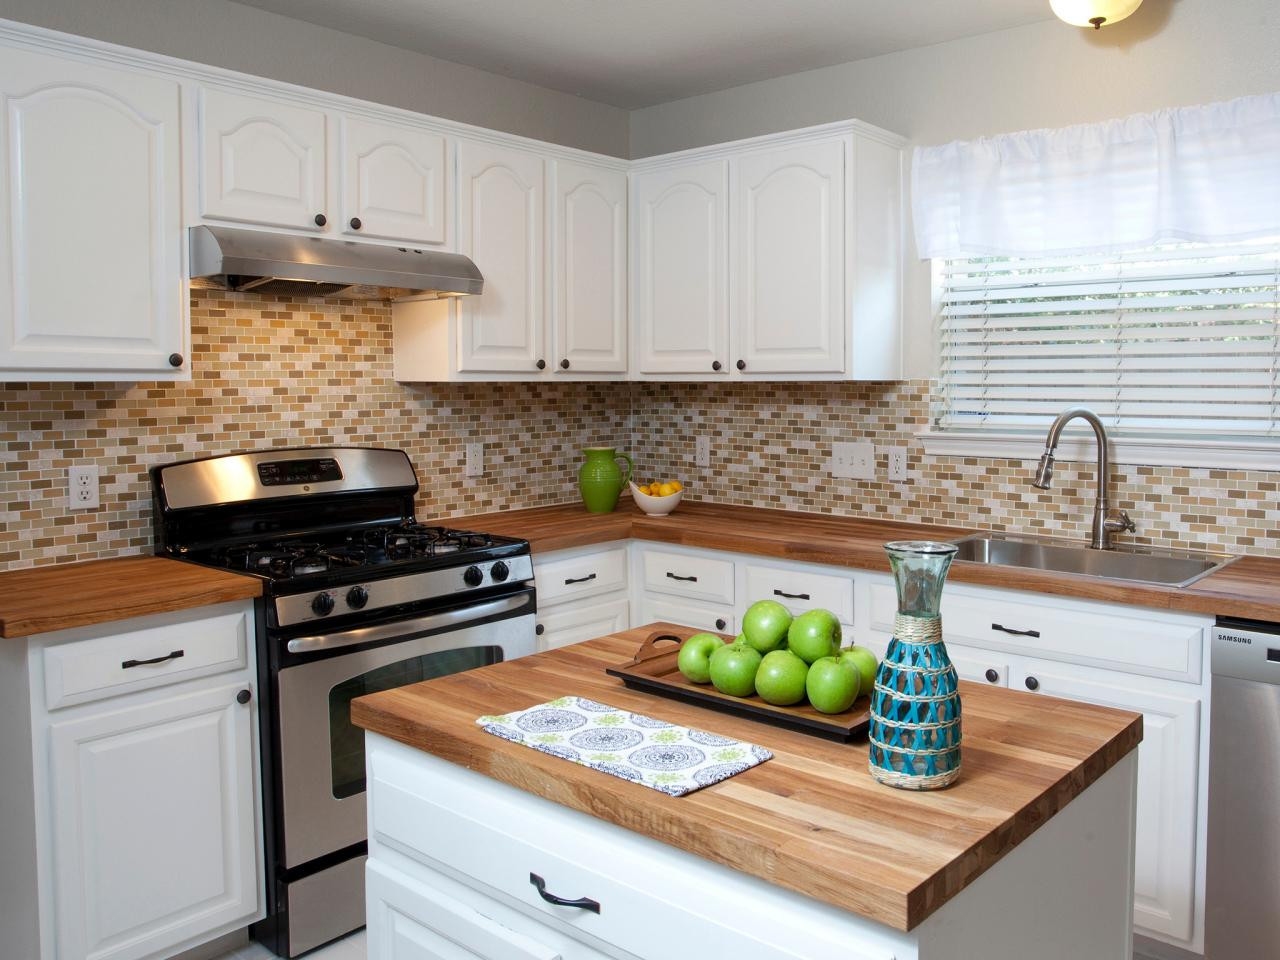 Wood kitchen countertops hgtv for Style kitchen countertops